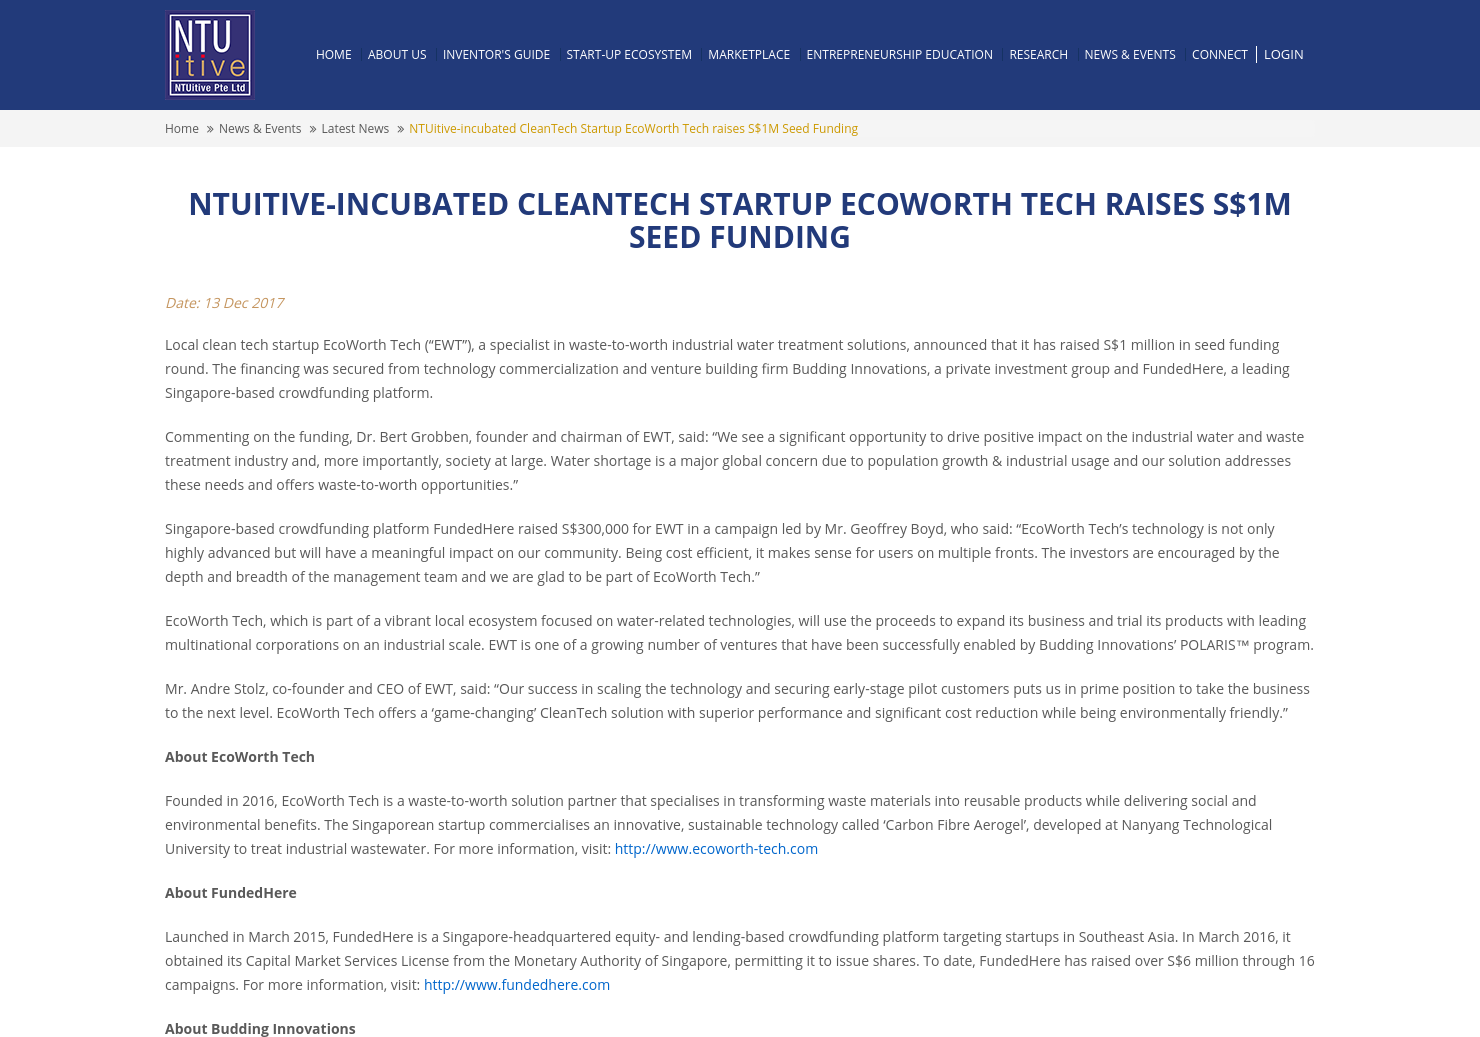 NTUITIVE-Incubated CleanTech Startup EcoWorth Tech Raises S